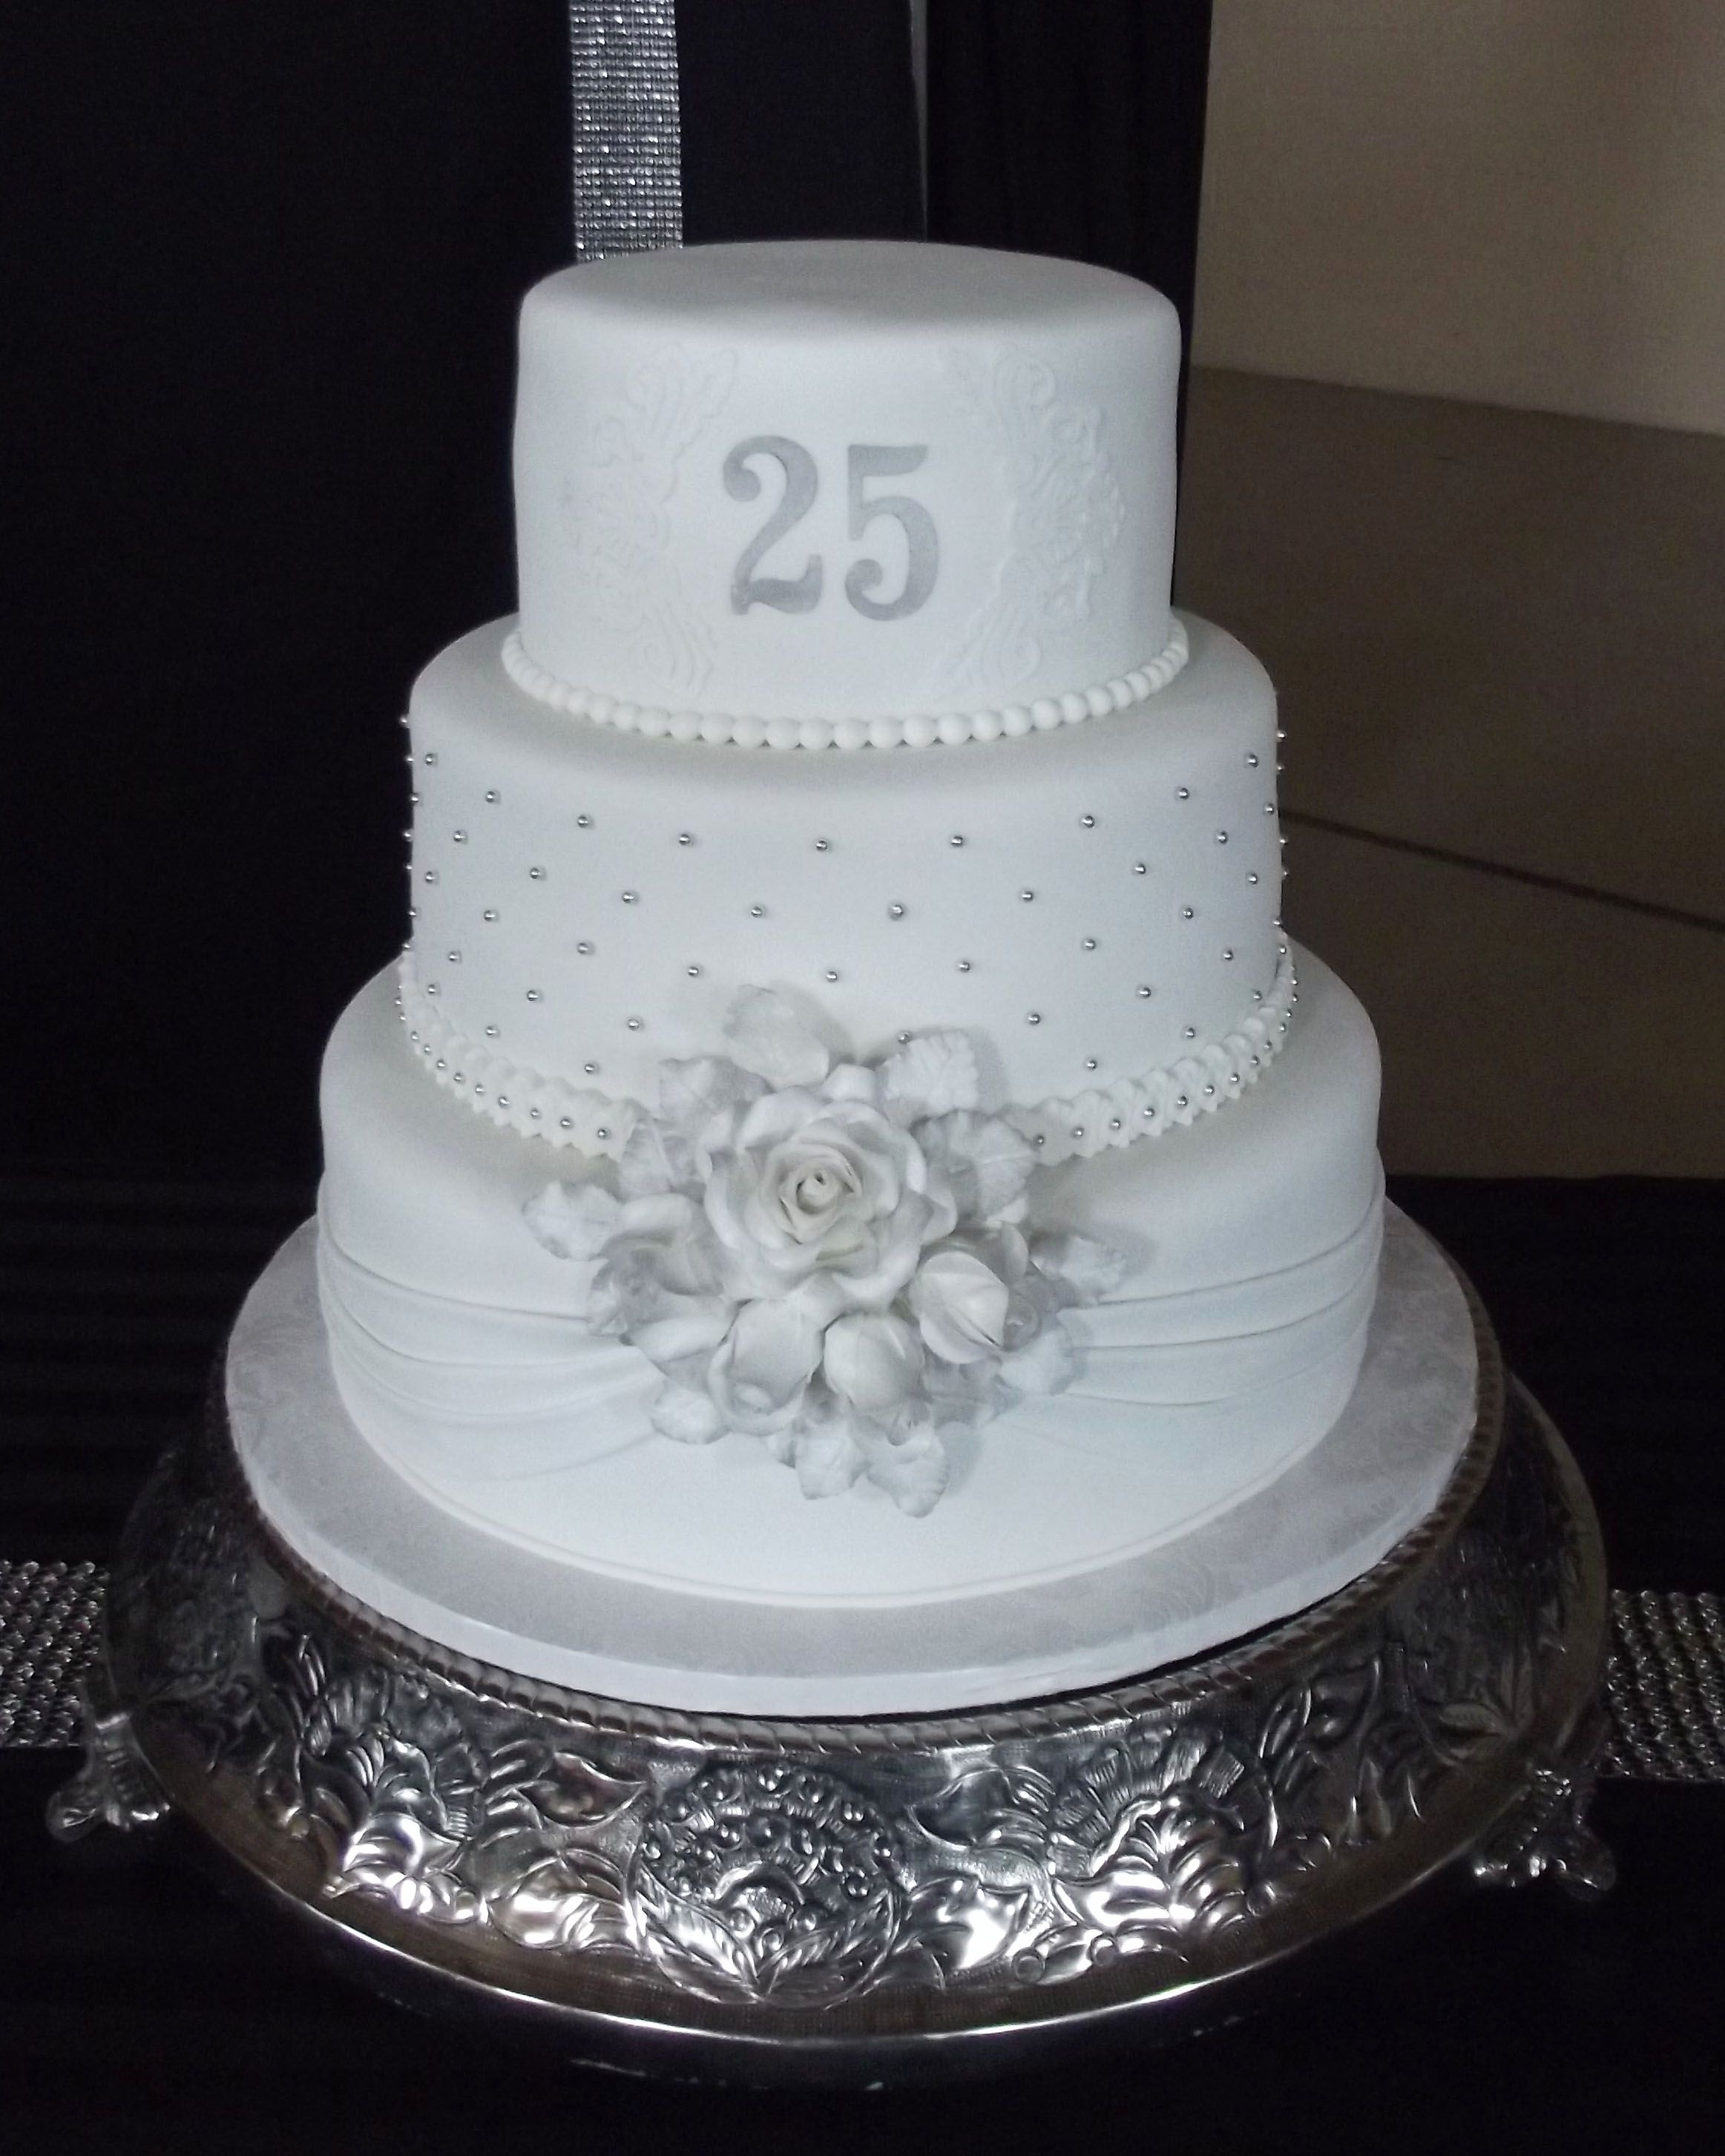 Best 25+ 25th wedding anniversary cakes ideas on Pinterest ...